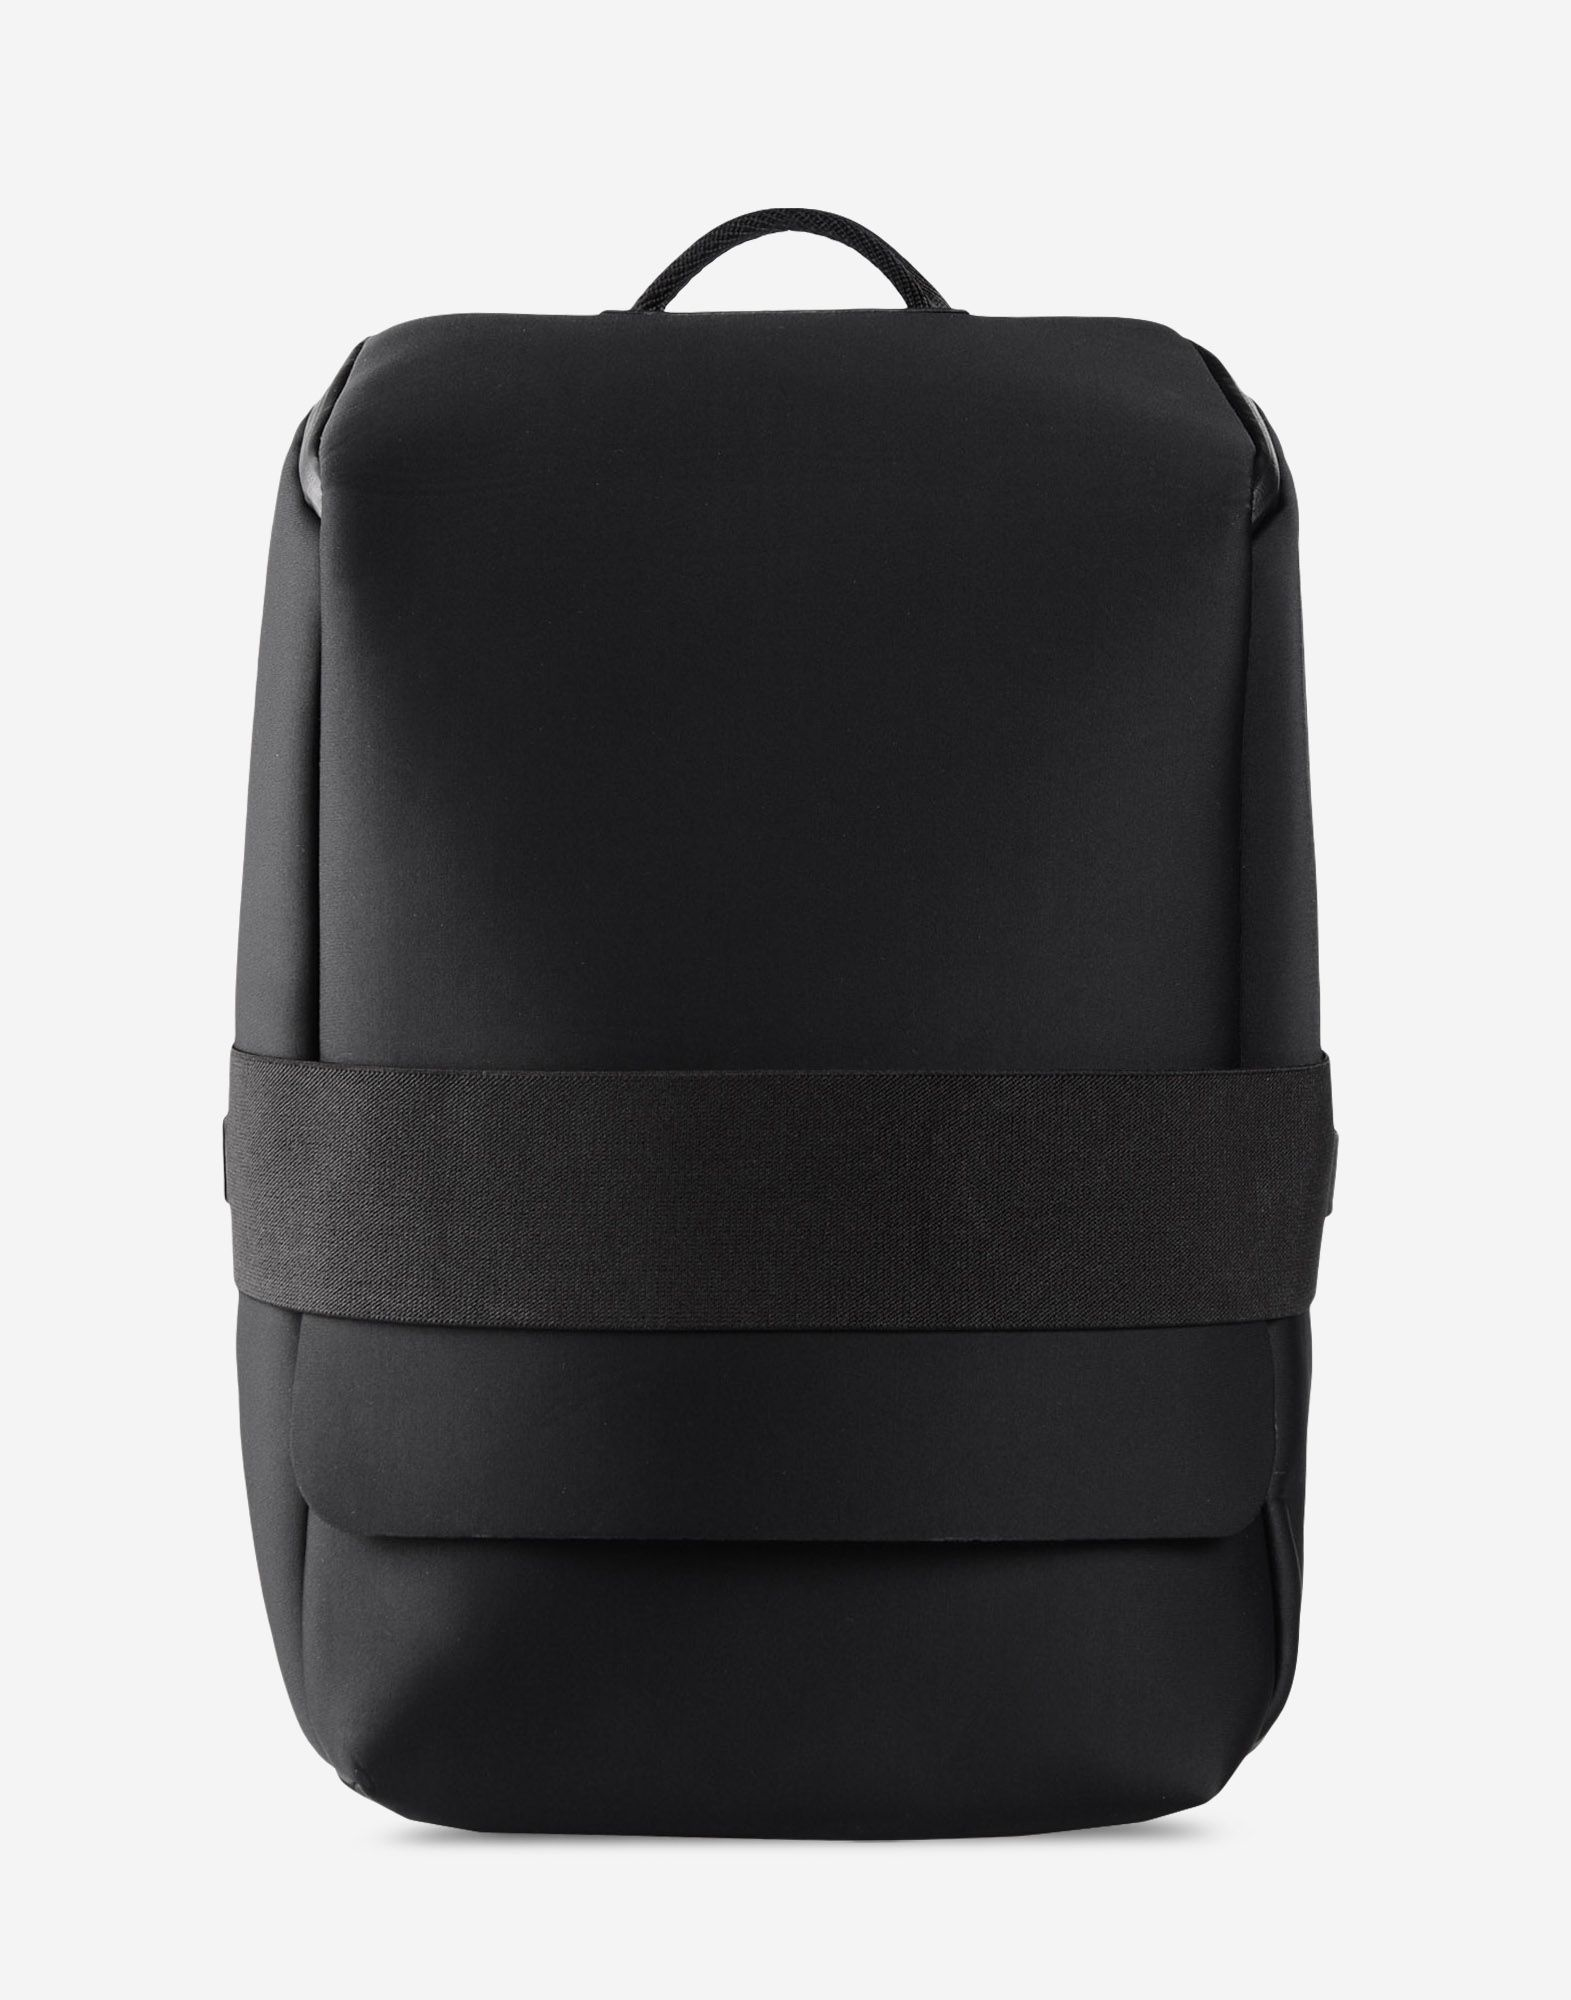 49c660edf59d Lyst - Y-3 Day Small Backpack in Black for Men